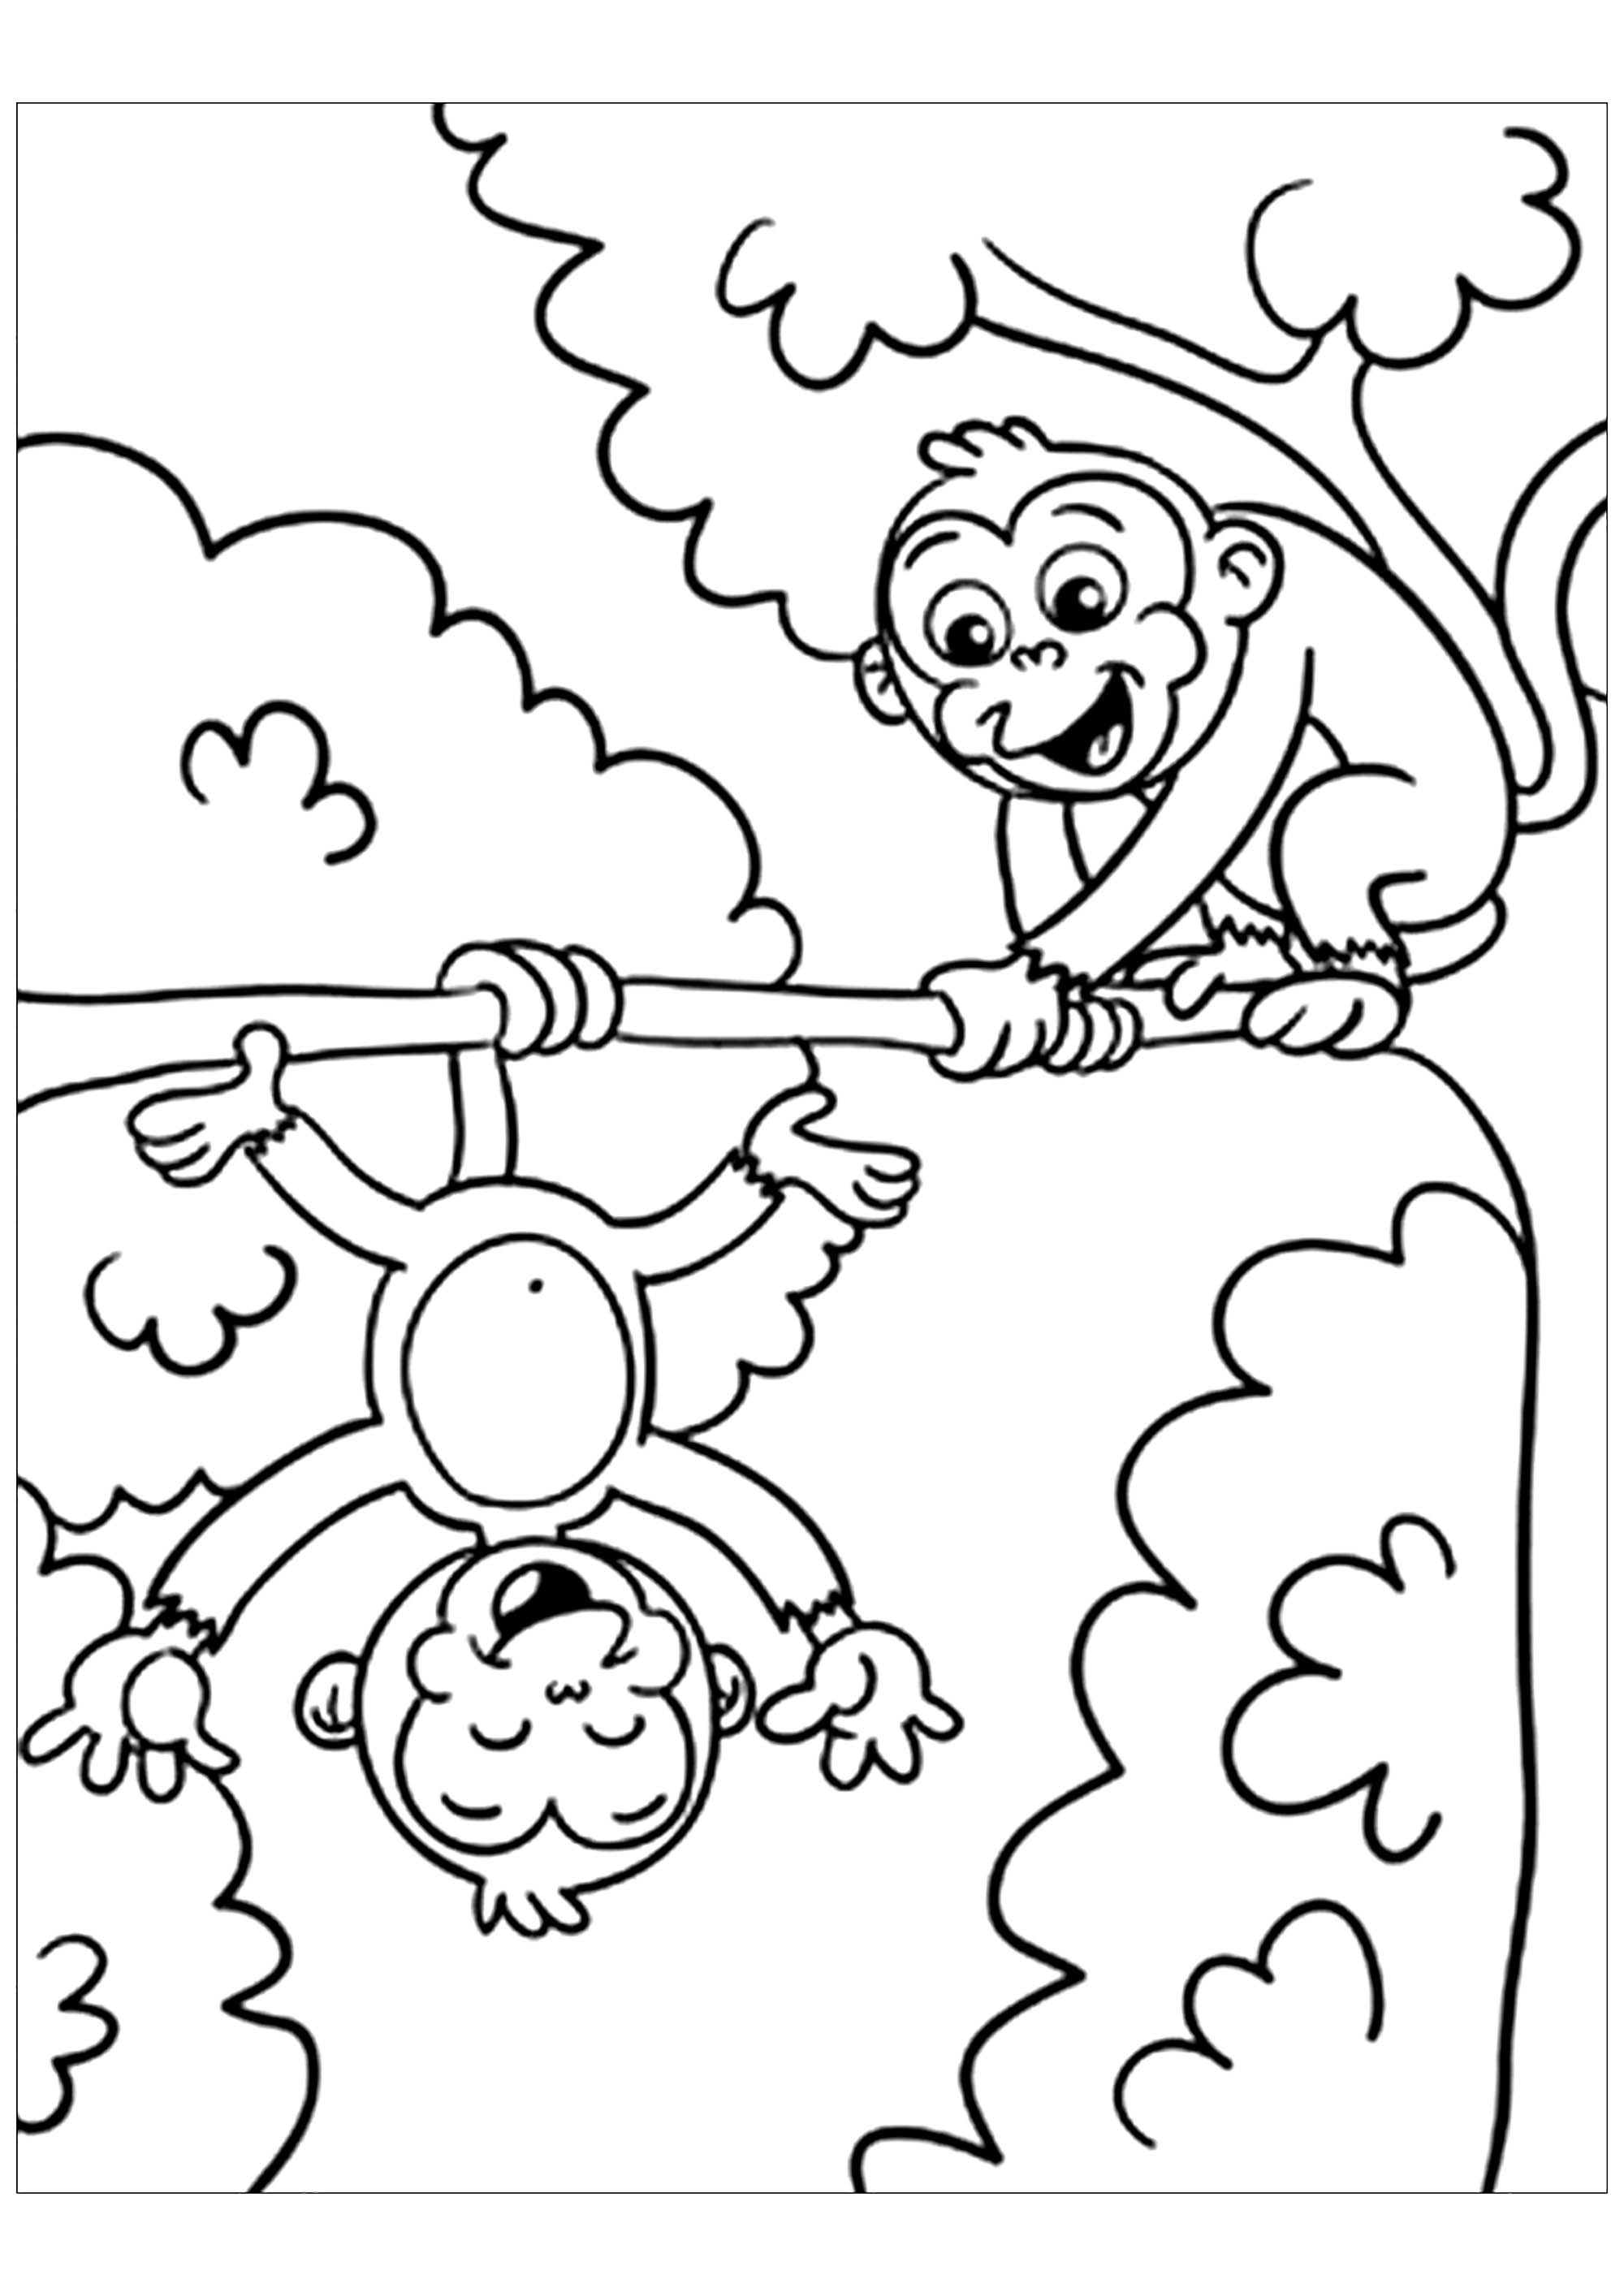 chimpanzee pictures to color cute coloring pages getcoloringpagescom color chimpanzee to pictures